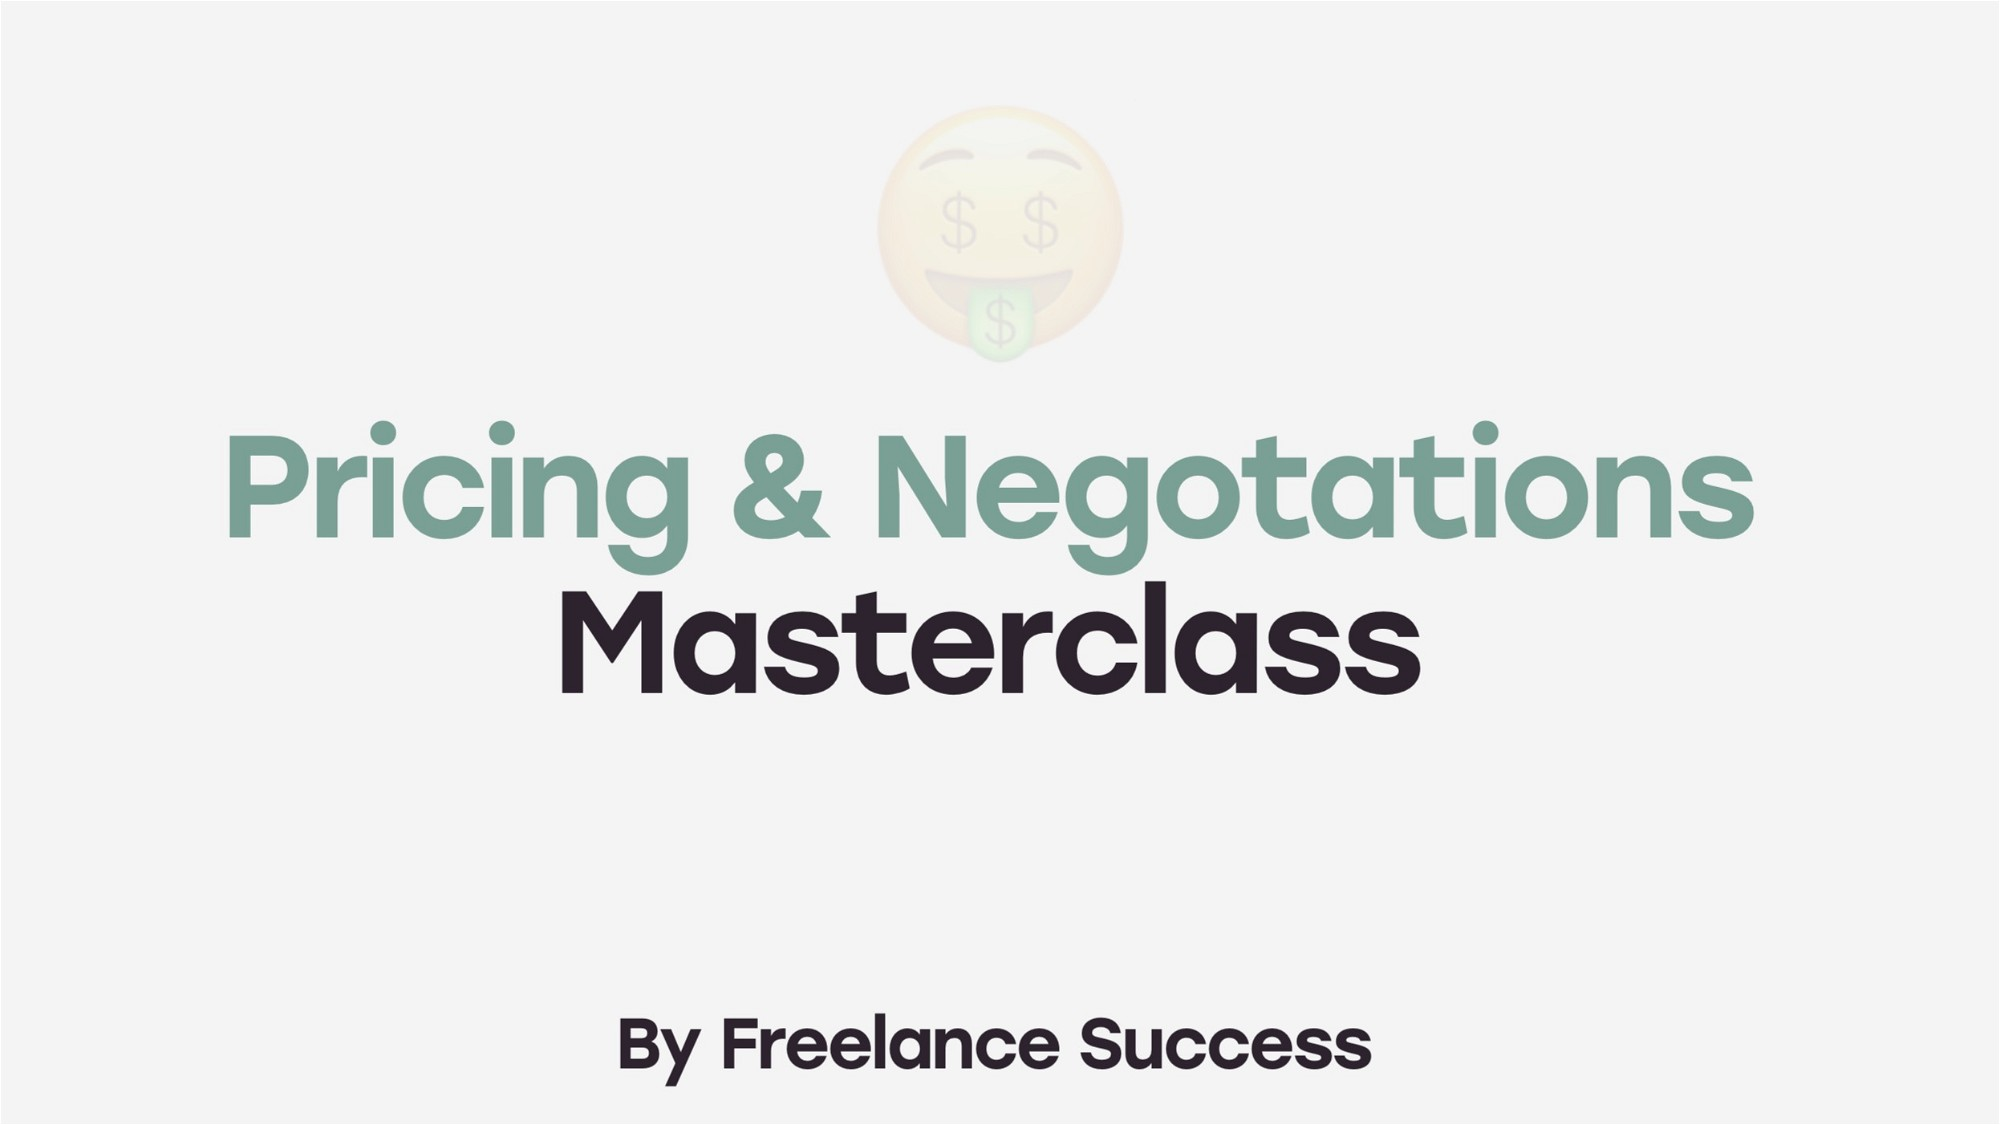 AppSumo Deal for Pricing & Negotiations Masterclass for Freelancers & Solopreneurs